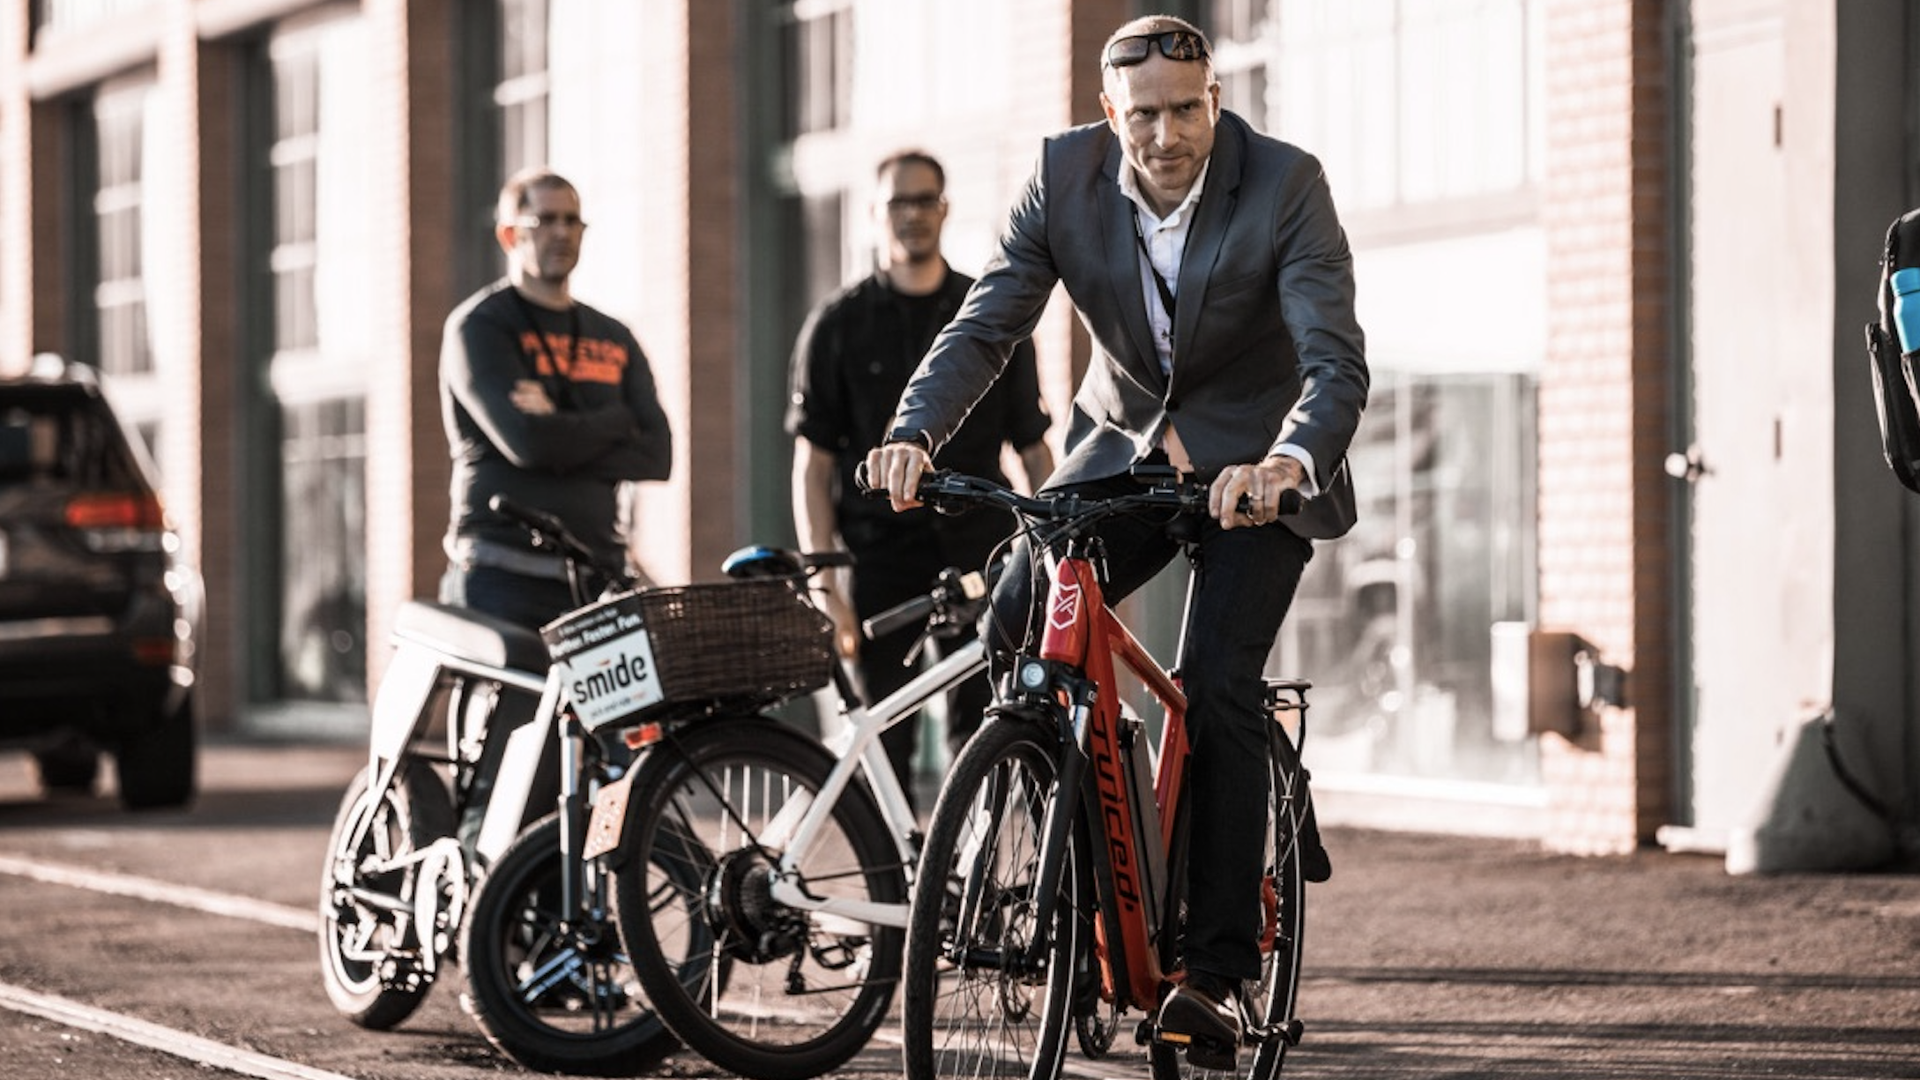 Bond Mobility CEO Raoul Stockle on a bike at the micromobility summit